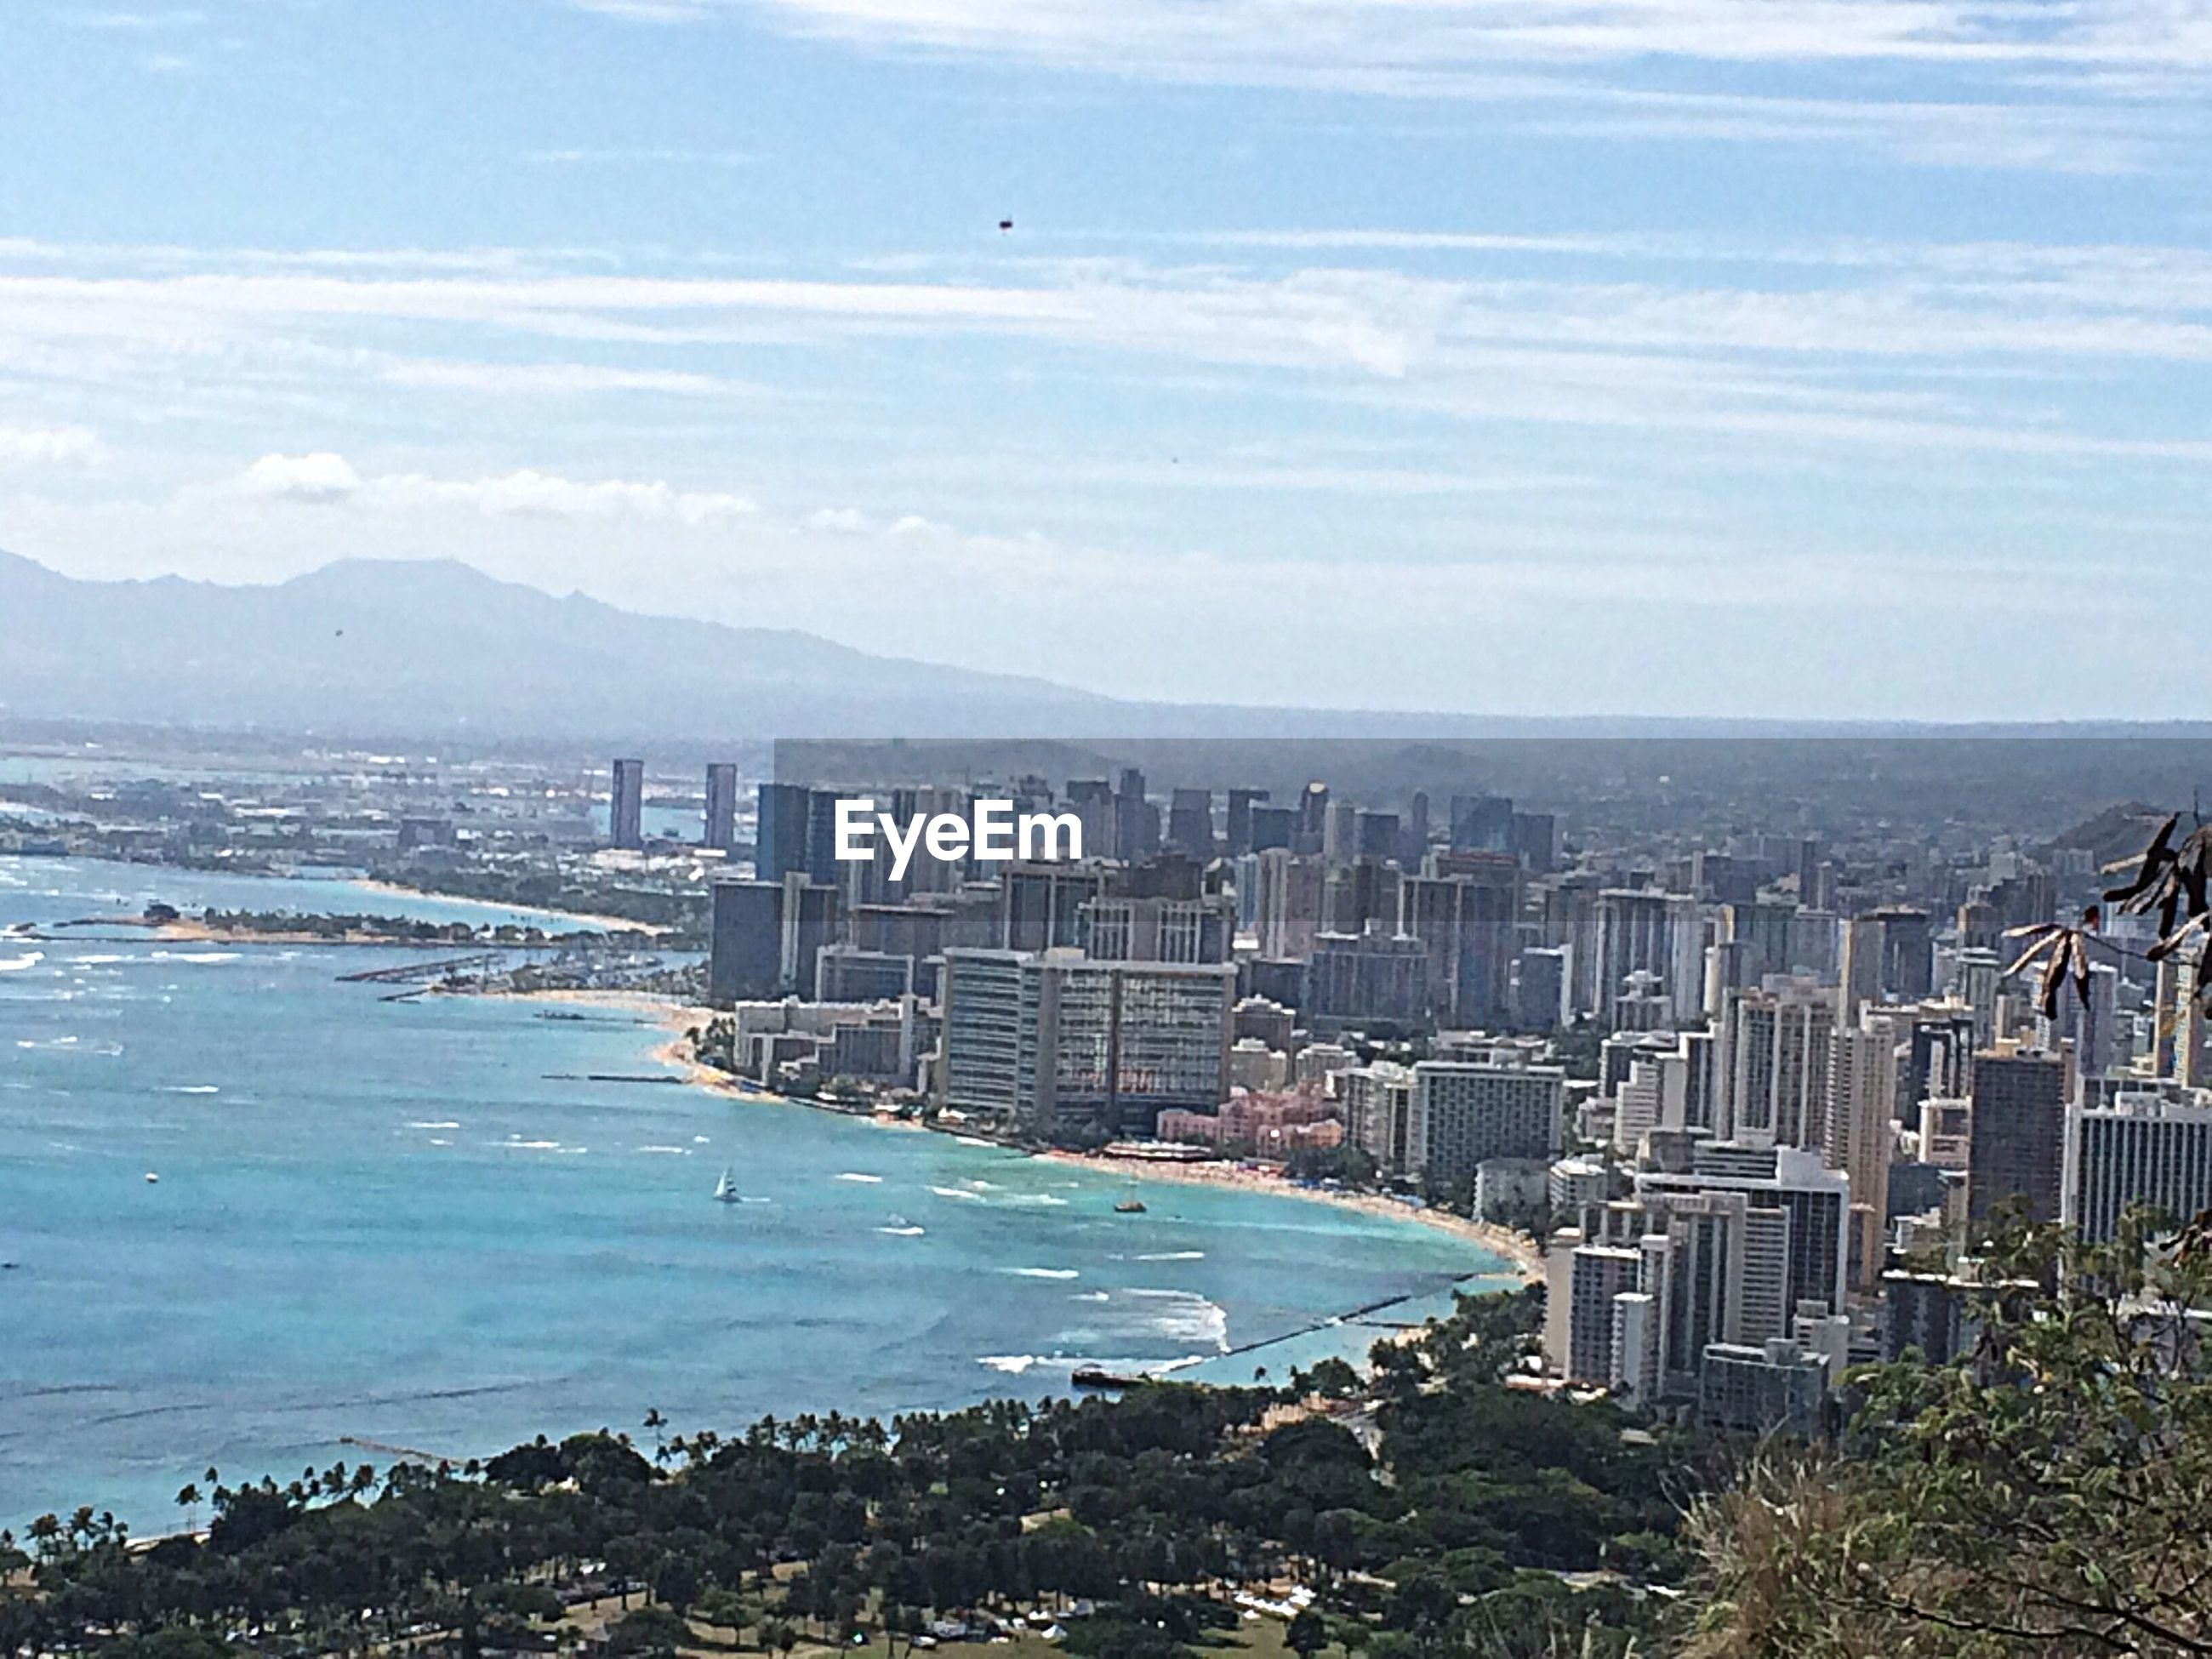 sea, water, architecture, city, building exterior, built structure, cityscape, sky, high angle view, coastline, skyscraper, mountain, beach, aerial view, crowded, day, nature, modern, scenics, outdoors